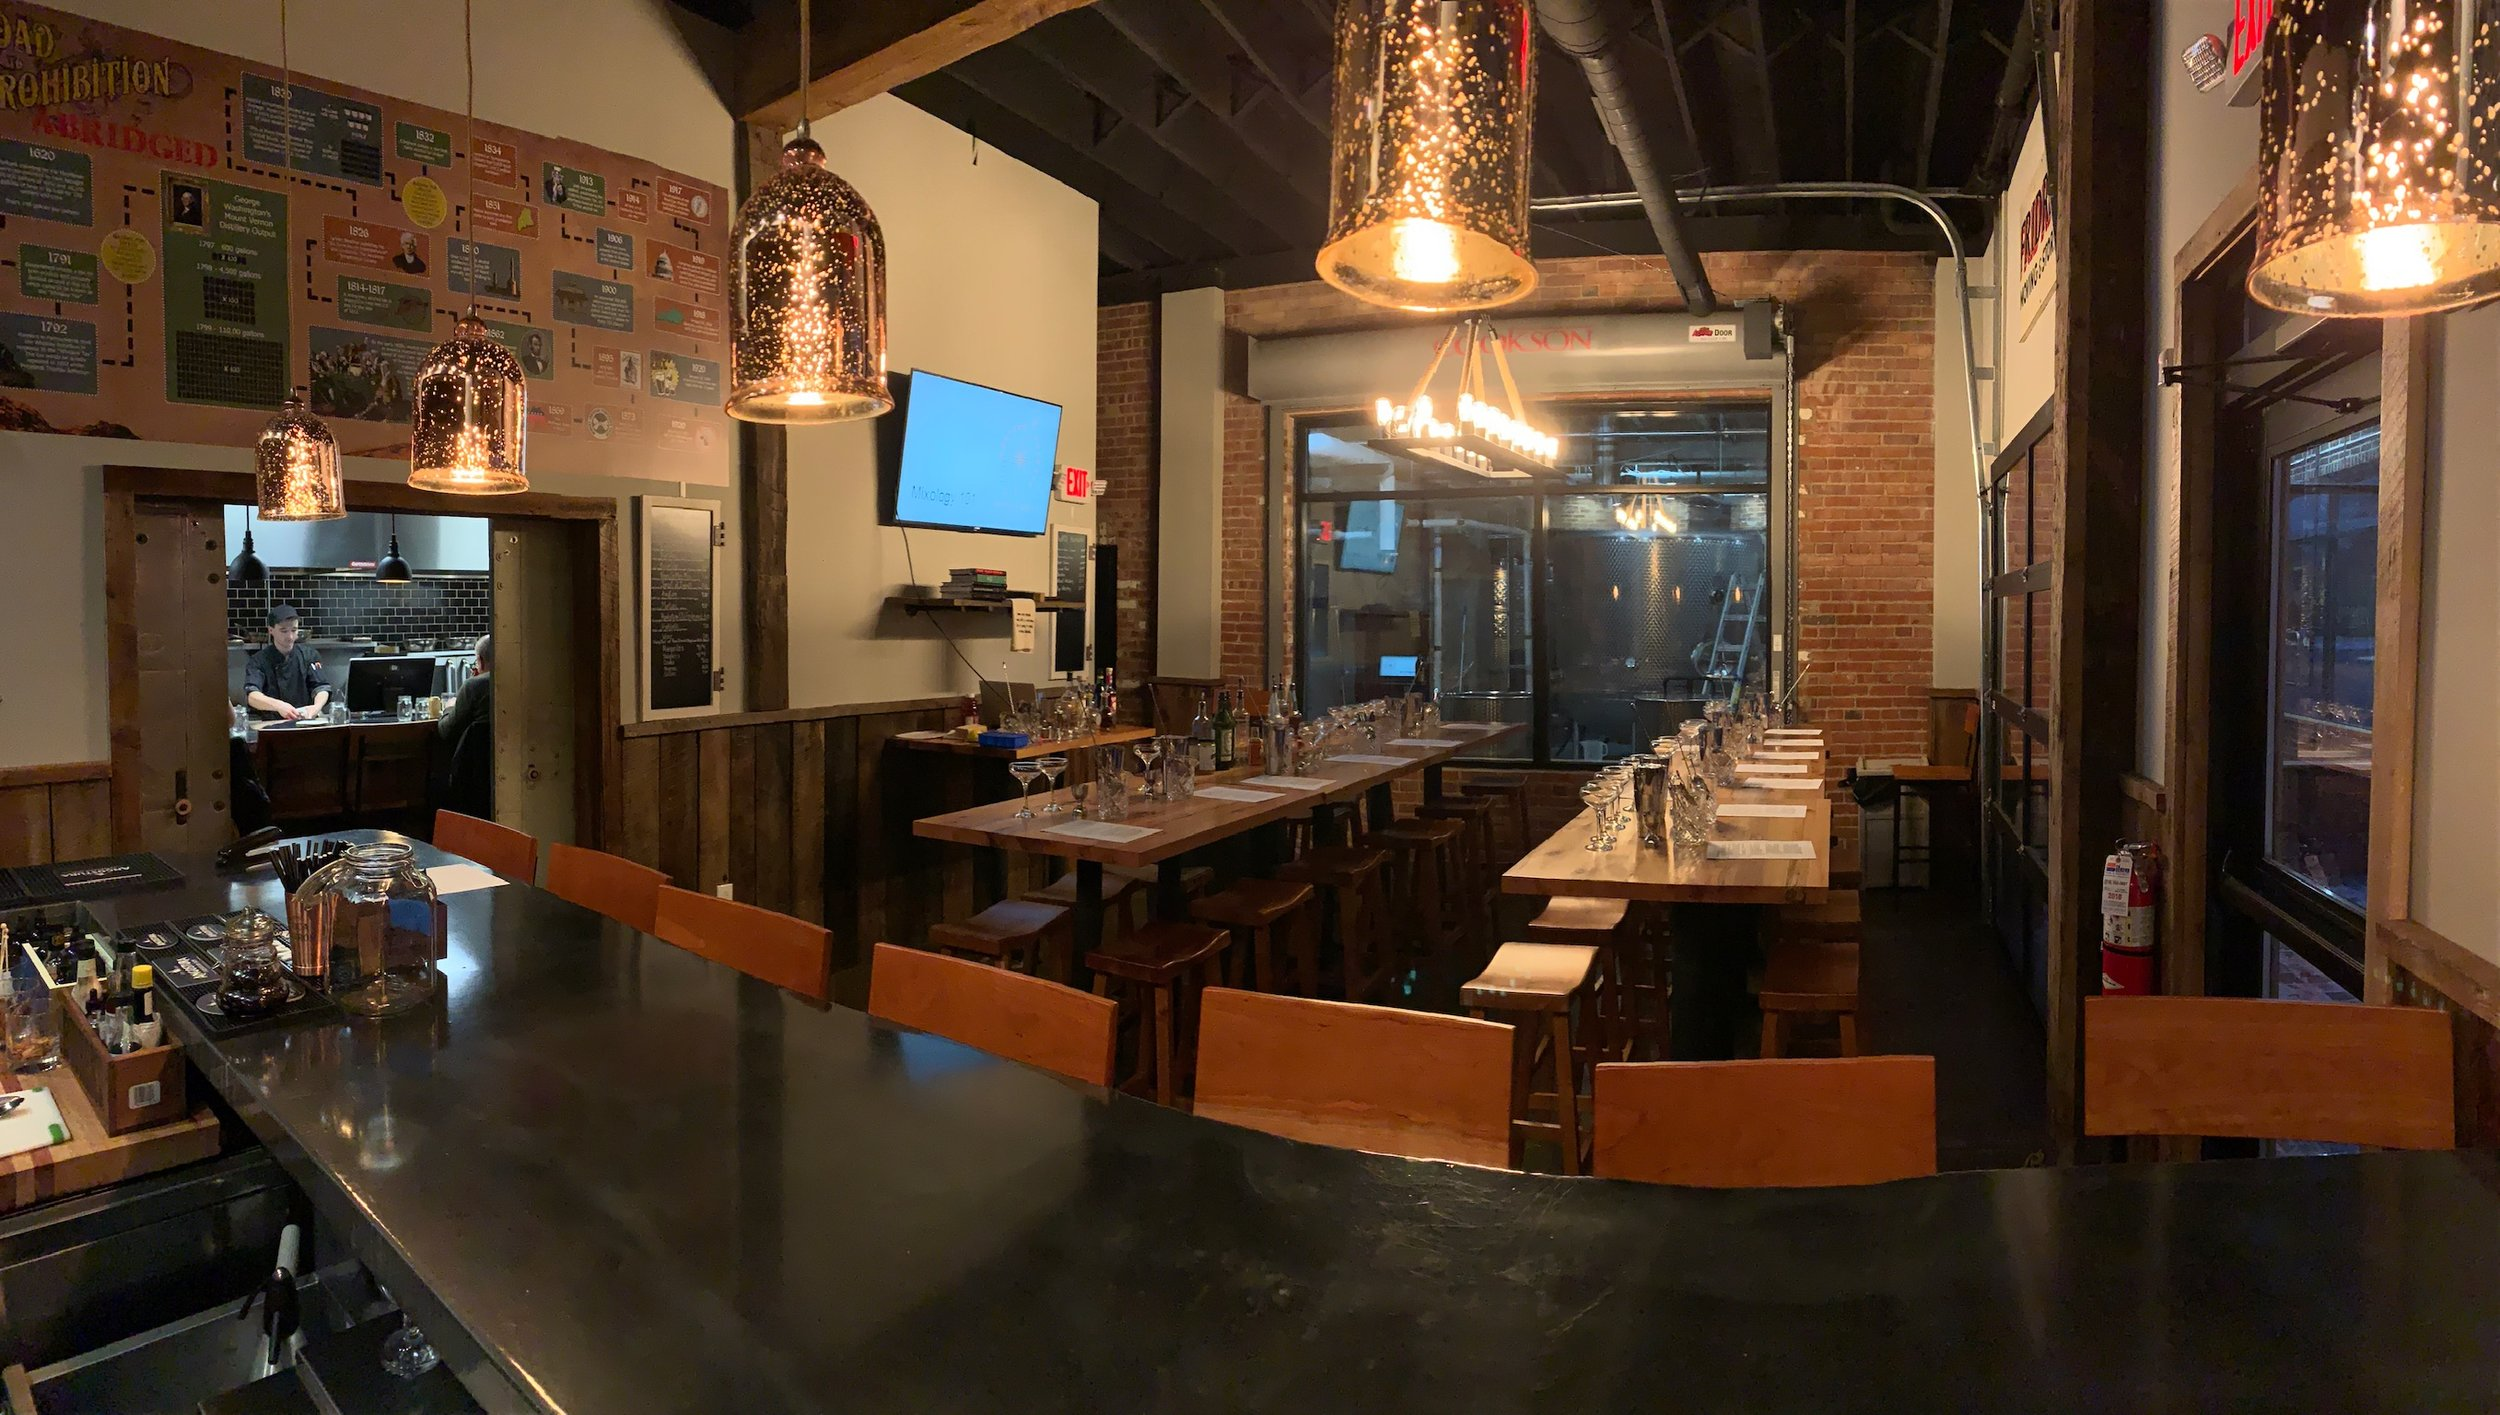 The Distillery Bar and Tasting Room